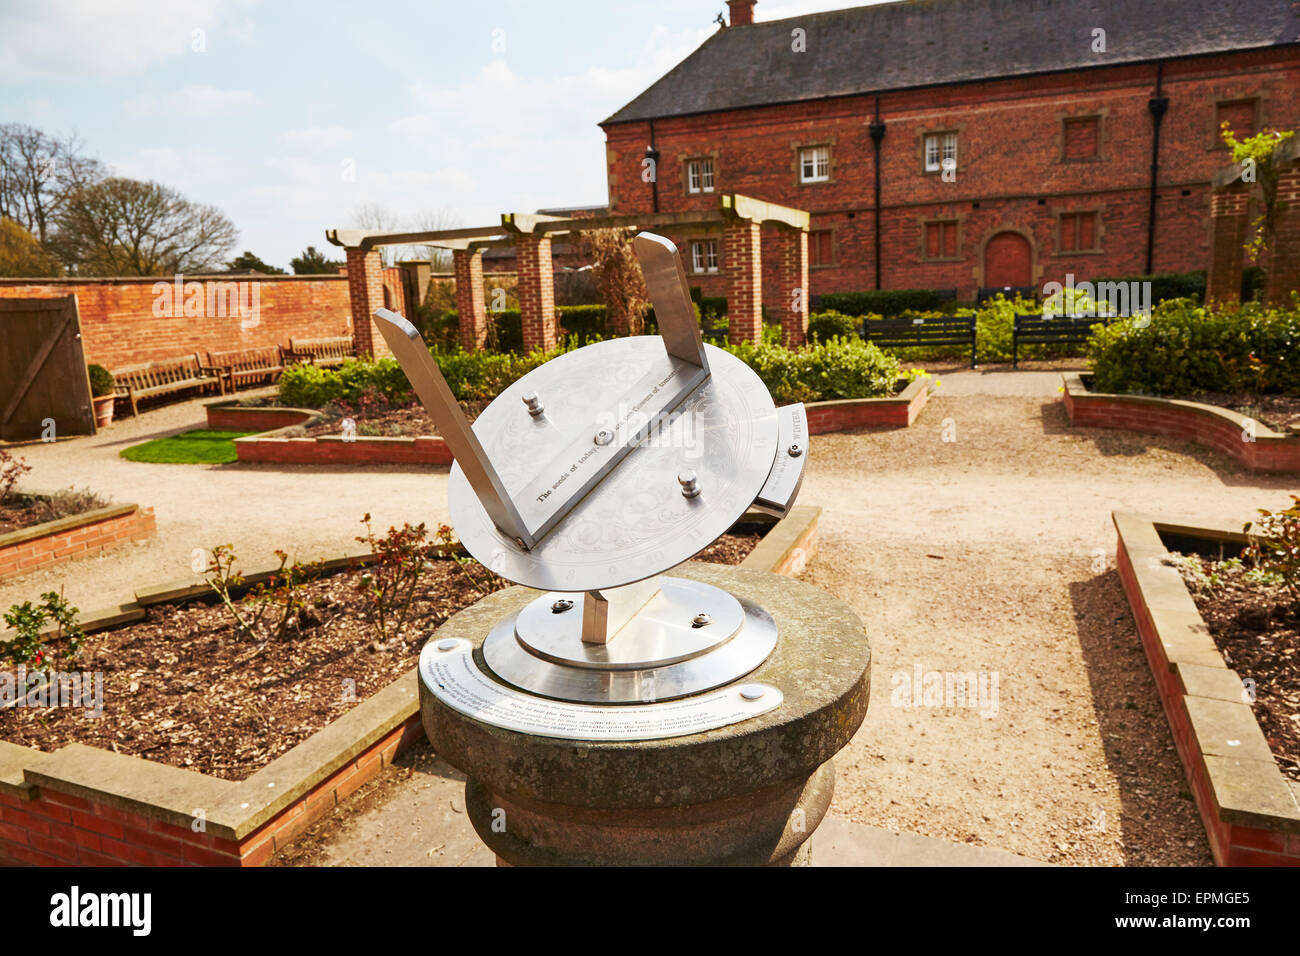 Metal sundial in the gardens at Rufford Abbey Country Park, Nottinghamshire, England, UK. - Stock Image